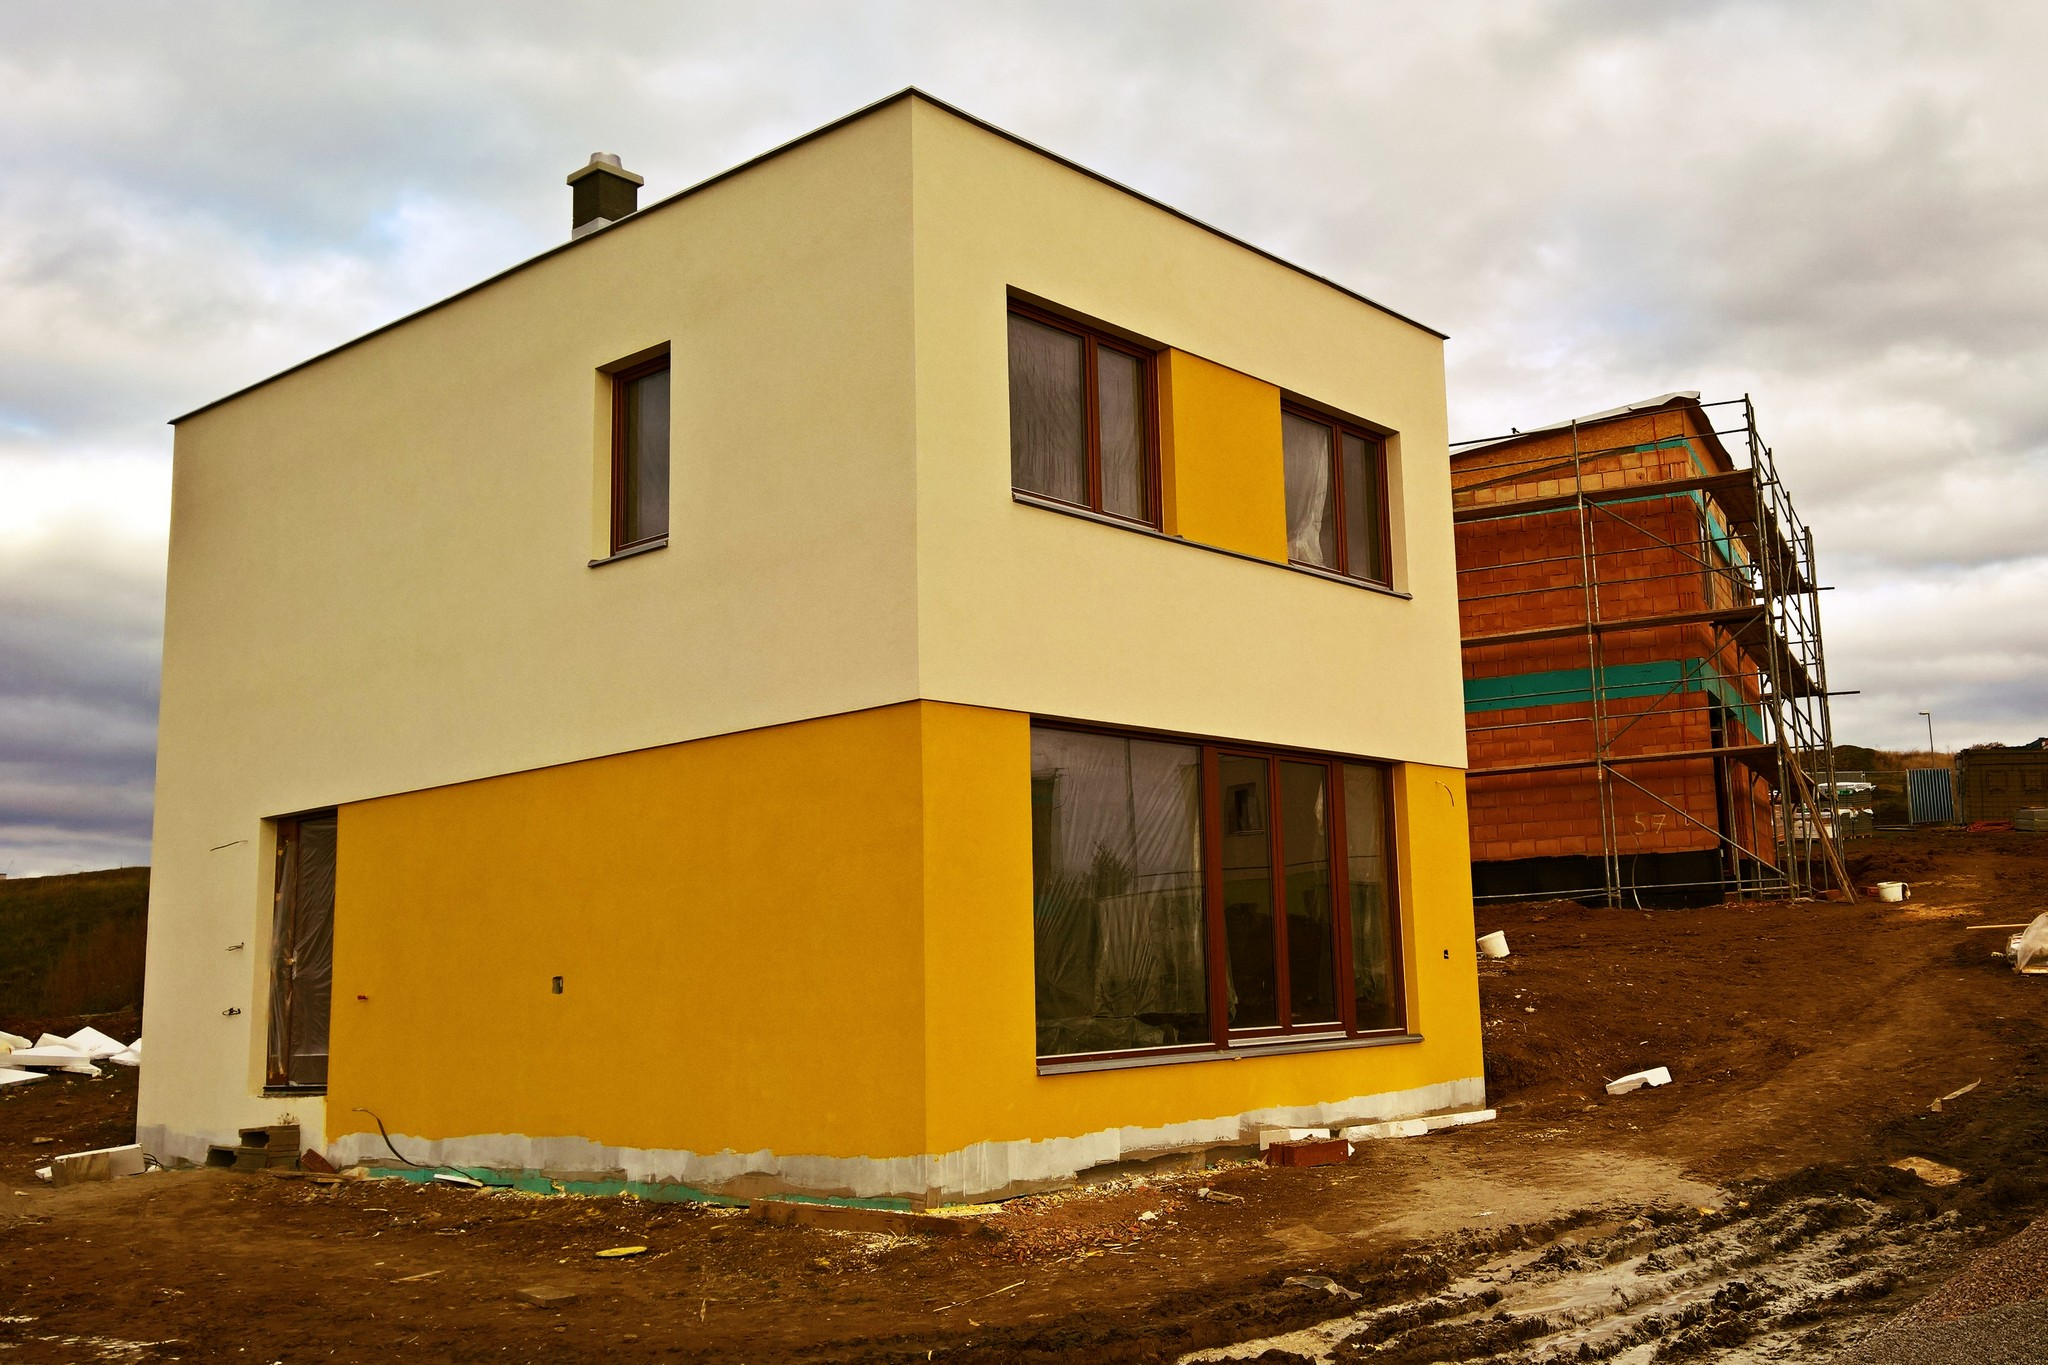 News from construction - 23.11.2016